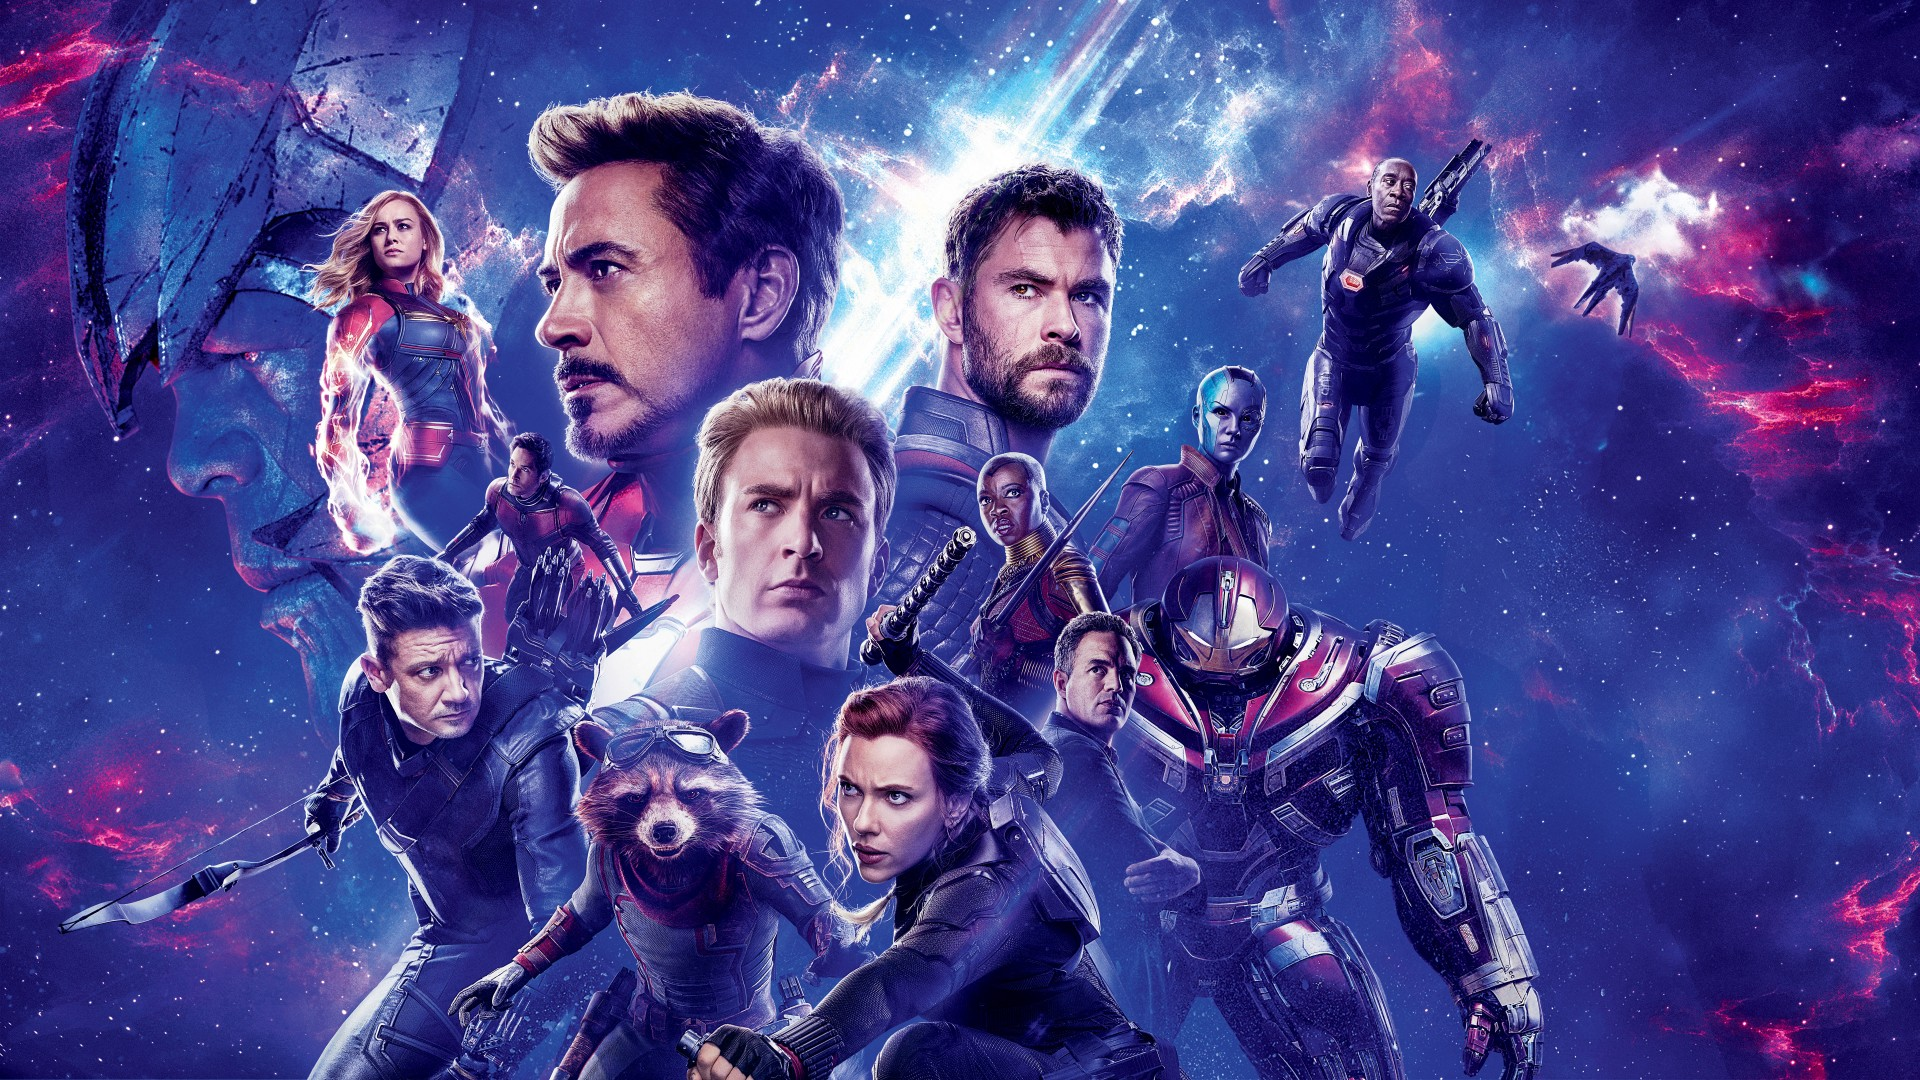 Cute Wallpaper 1440 1080 Avengers Endgame 4k 8k Wallpapers Hd Wallpapers Id 28130